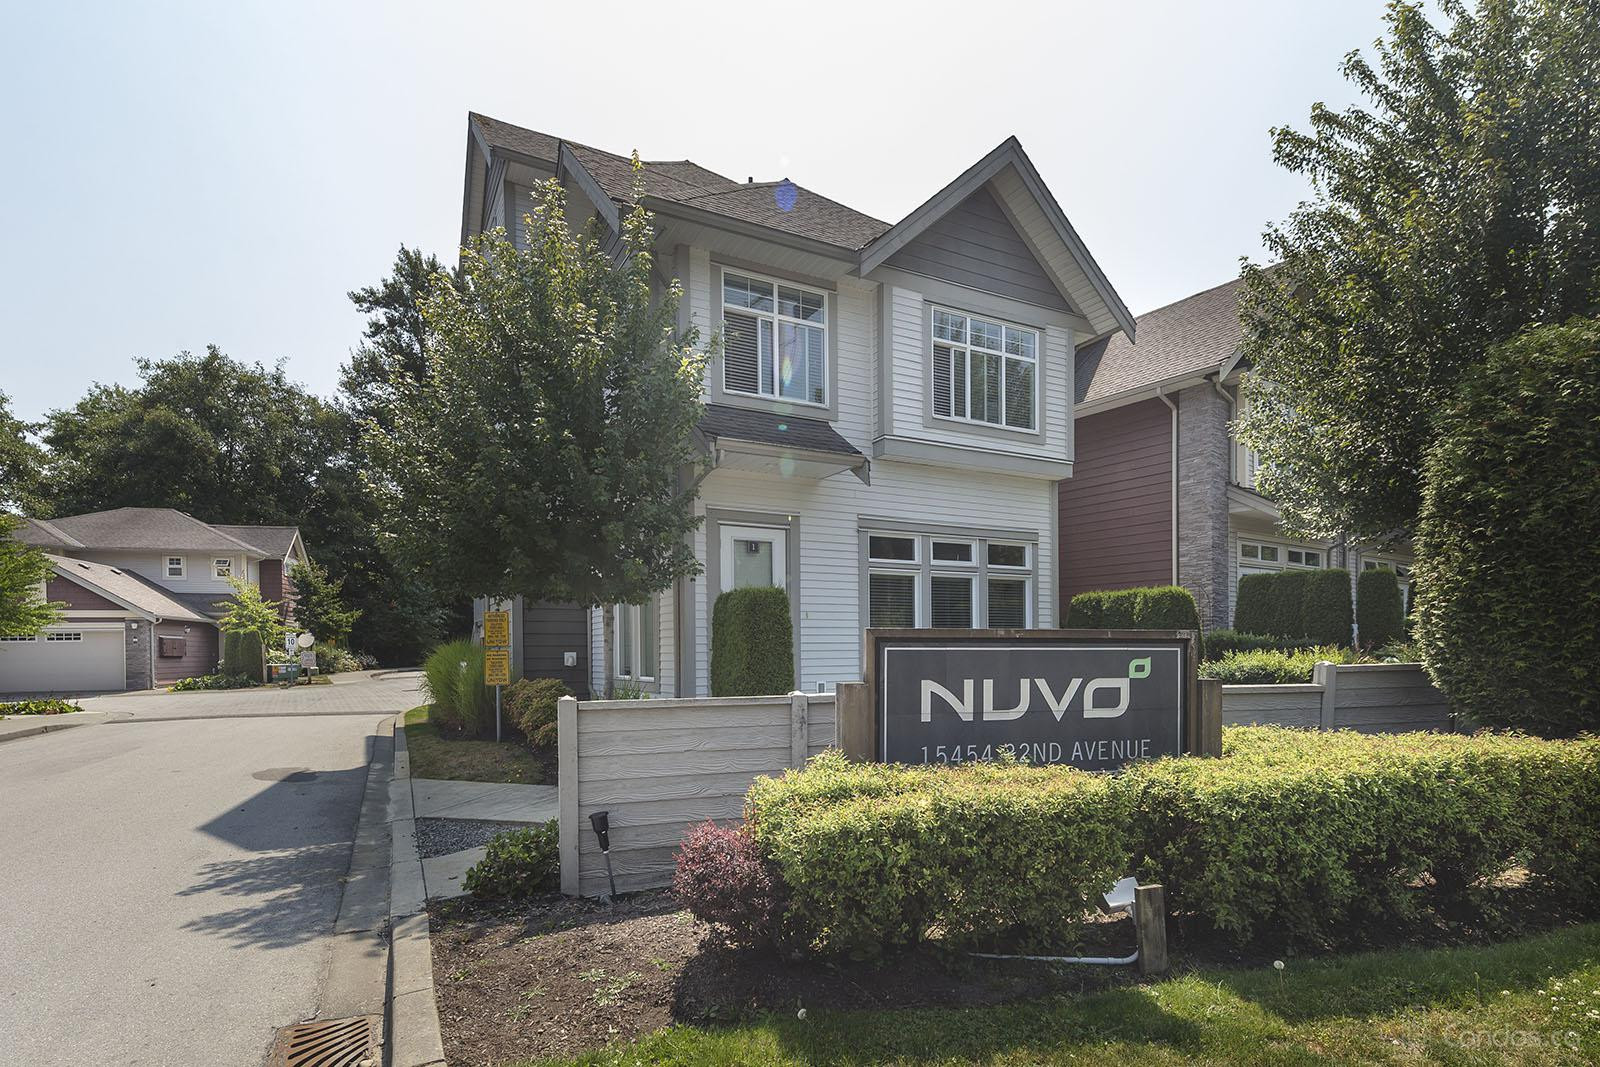 Nuvo at 15454 32 Ave, Surrey 1